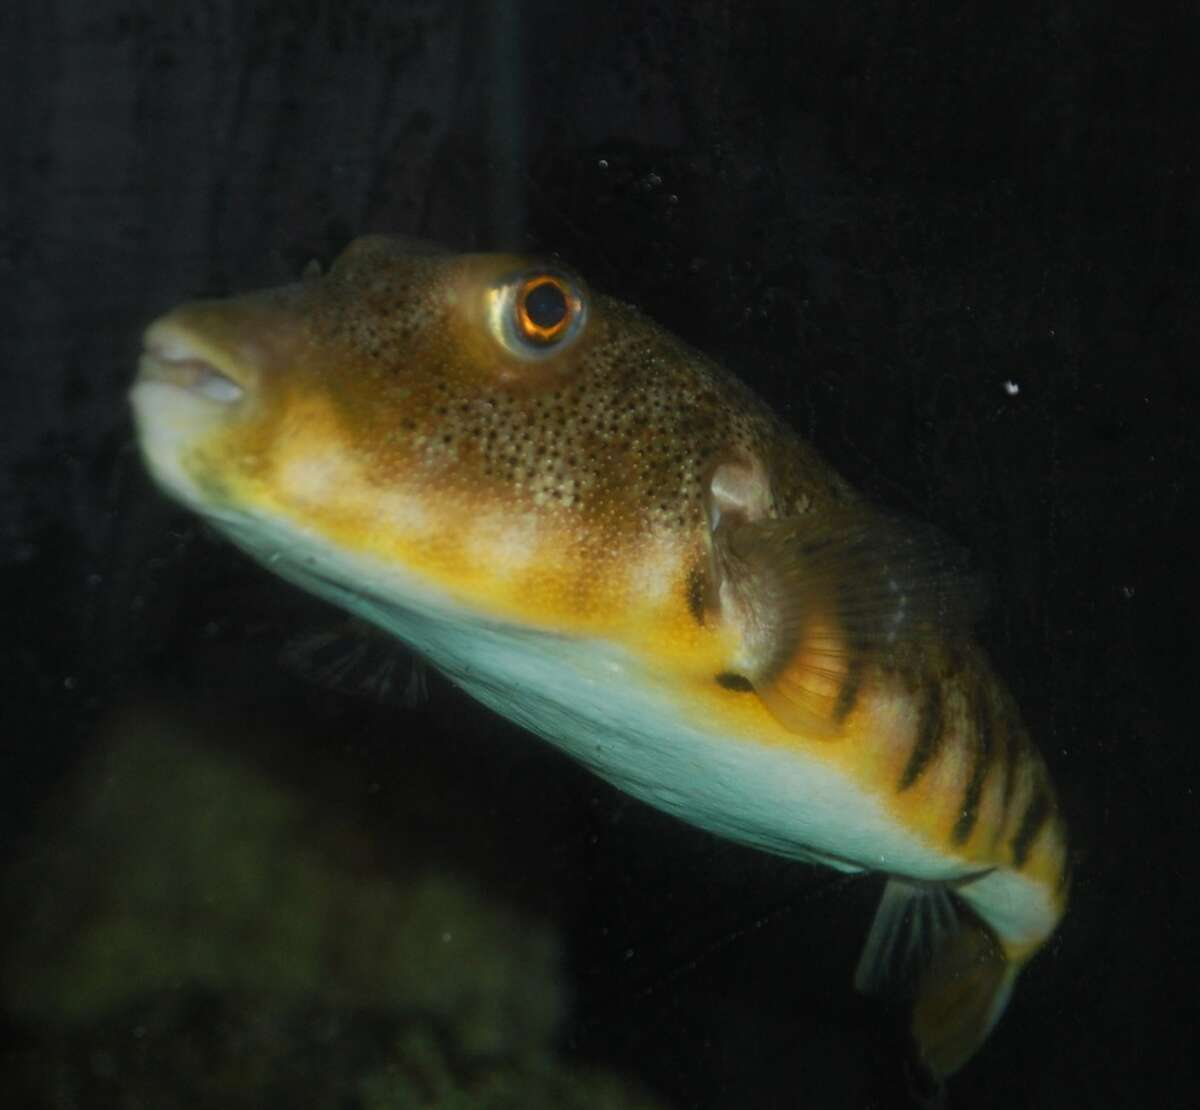 The Northern Pufferfish is your classic